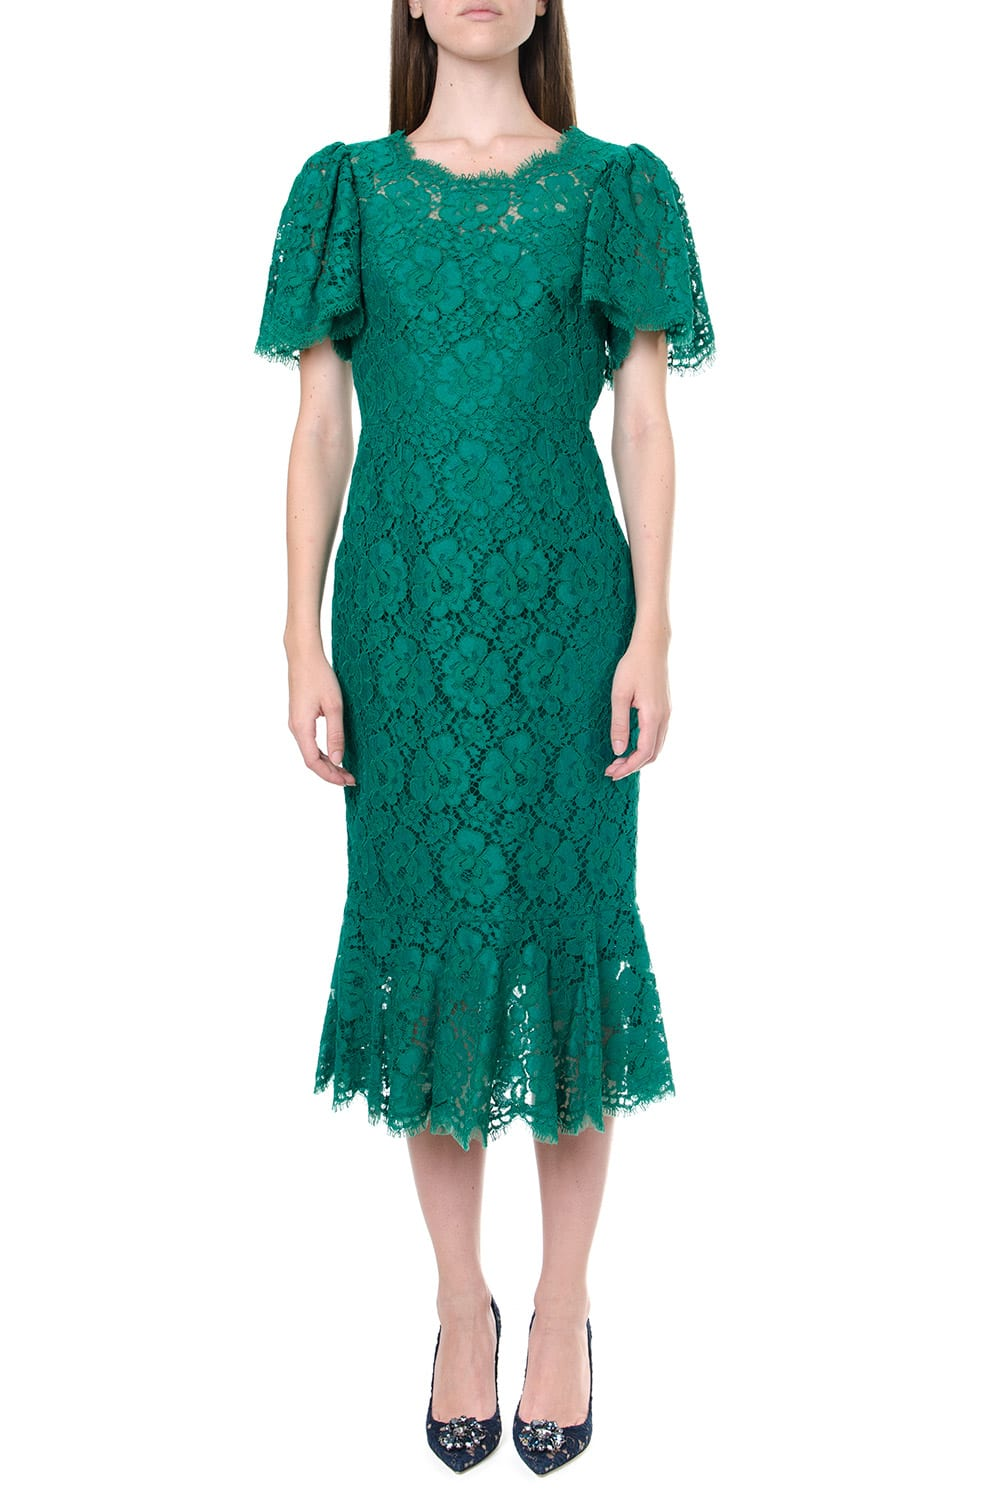 Buy Dolce & Gabbana Green Lace Midi Dress online, shop Dolce & Gabbana with free shipping